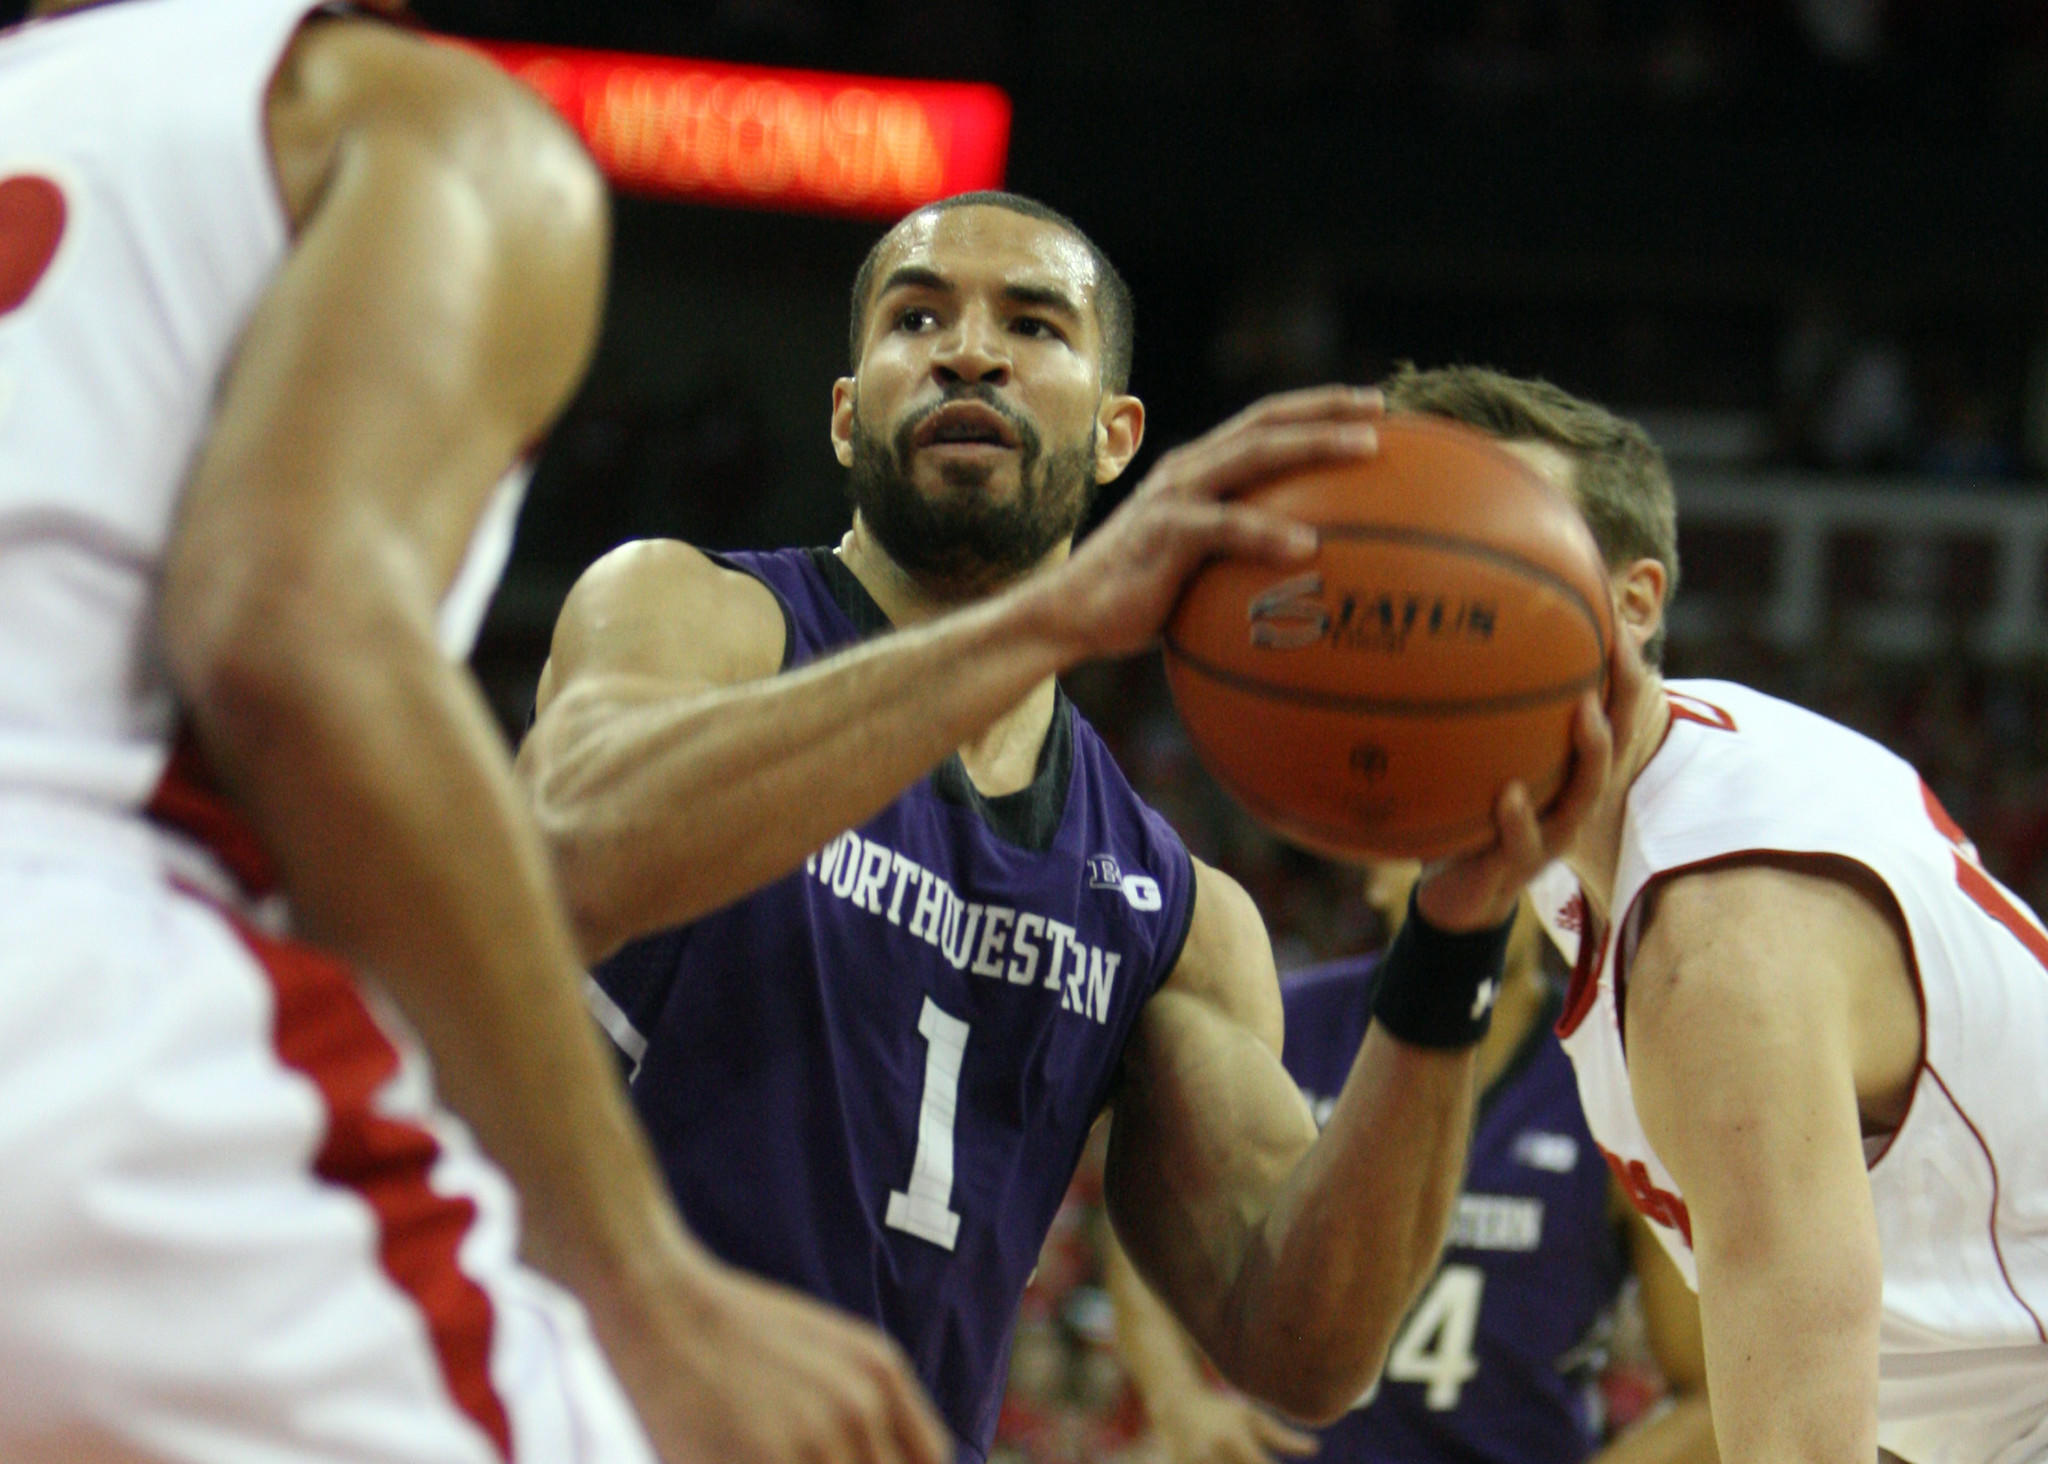 Northwestern guard Drew Crawford looks to pass against Wisconsin.